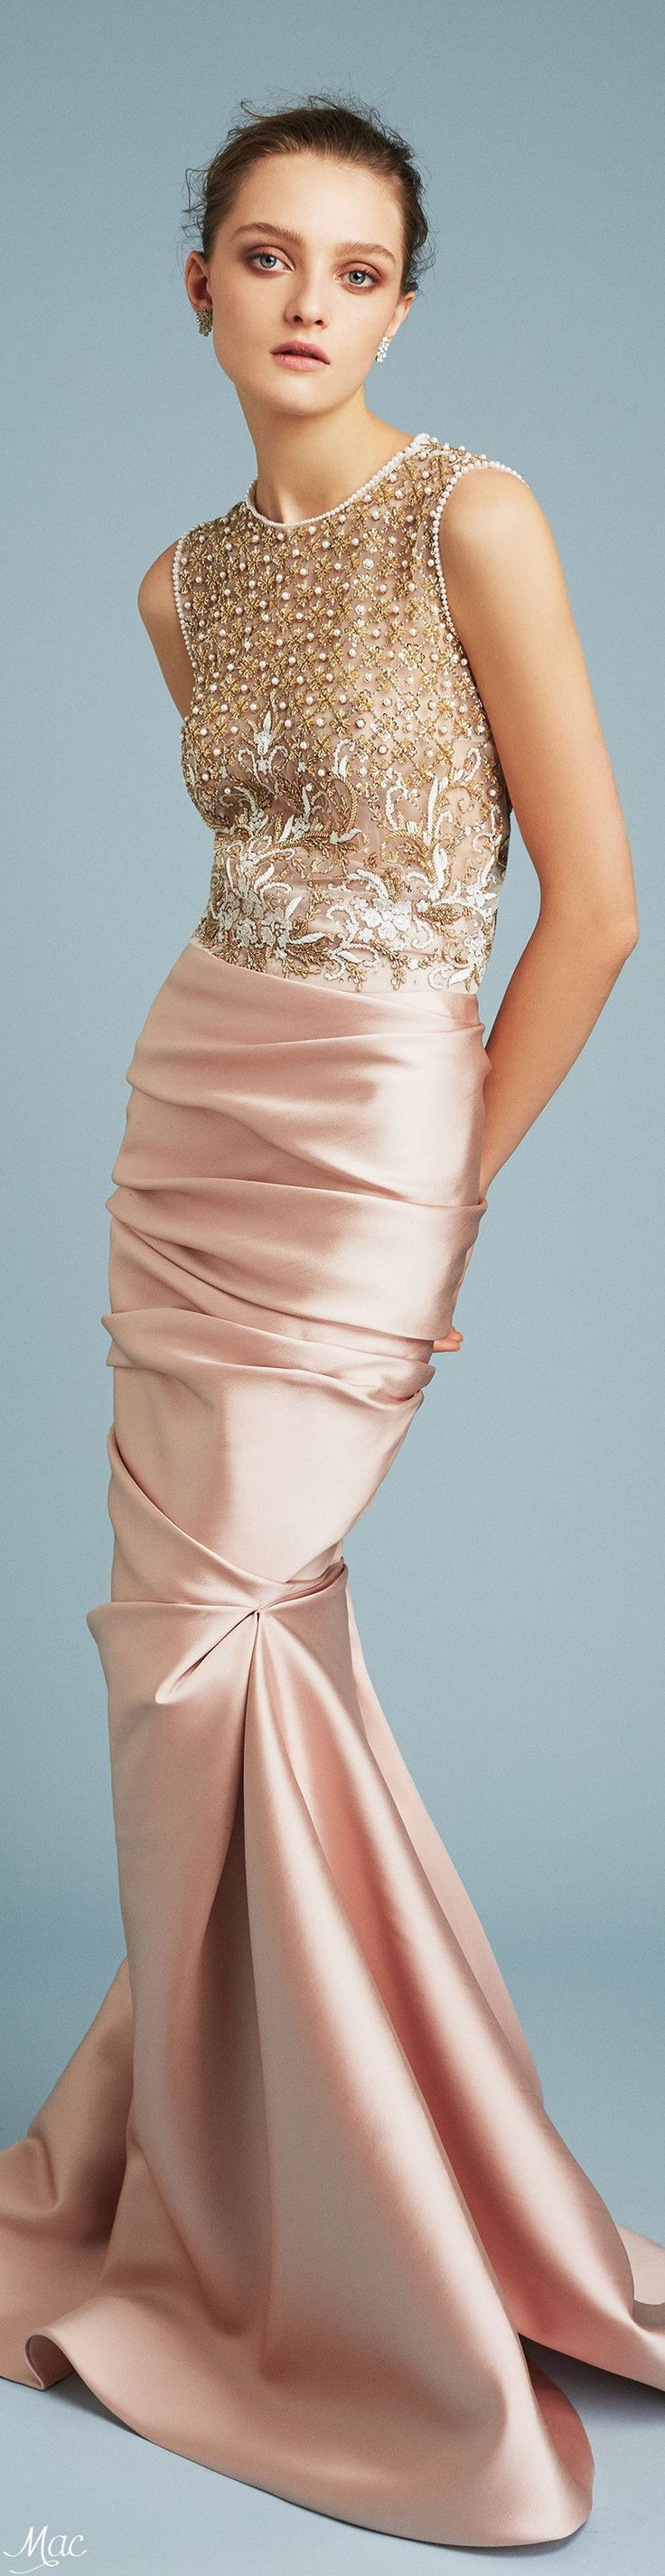 best girly glitz and glam images on pinterest high fashion